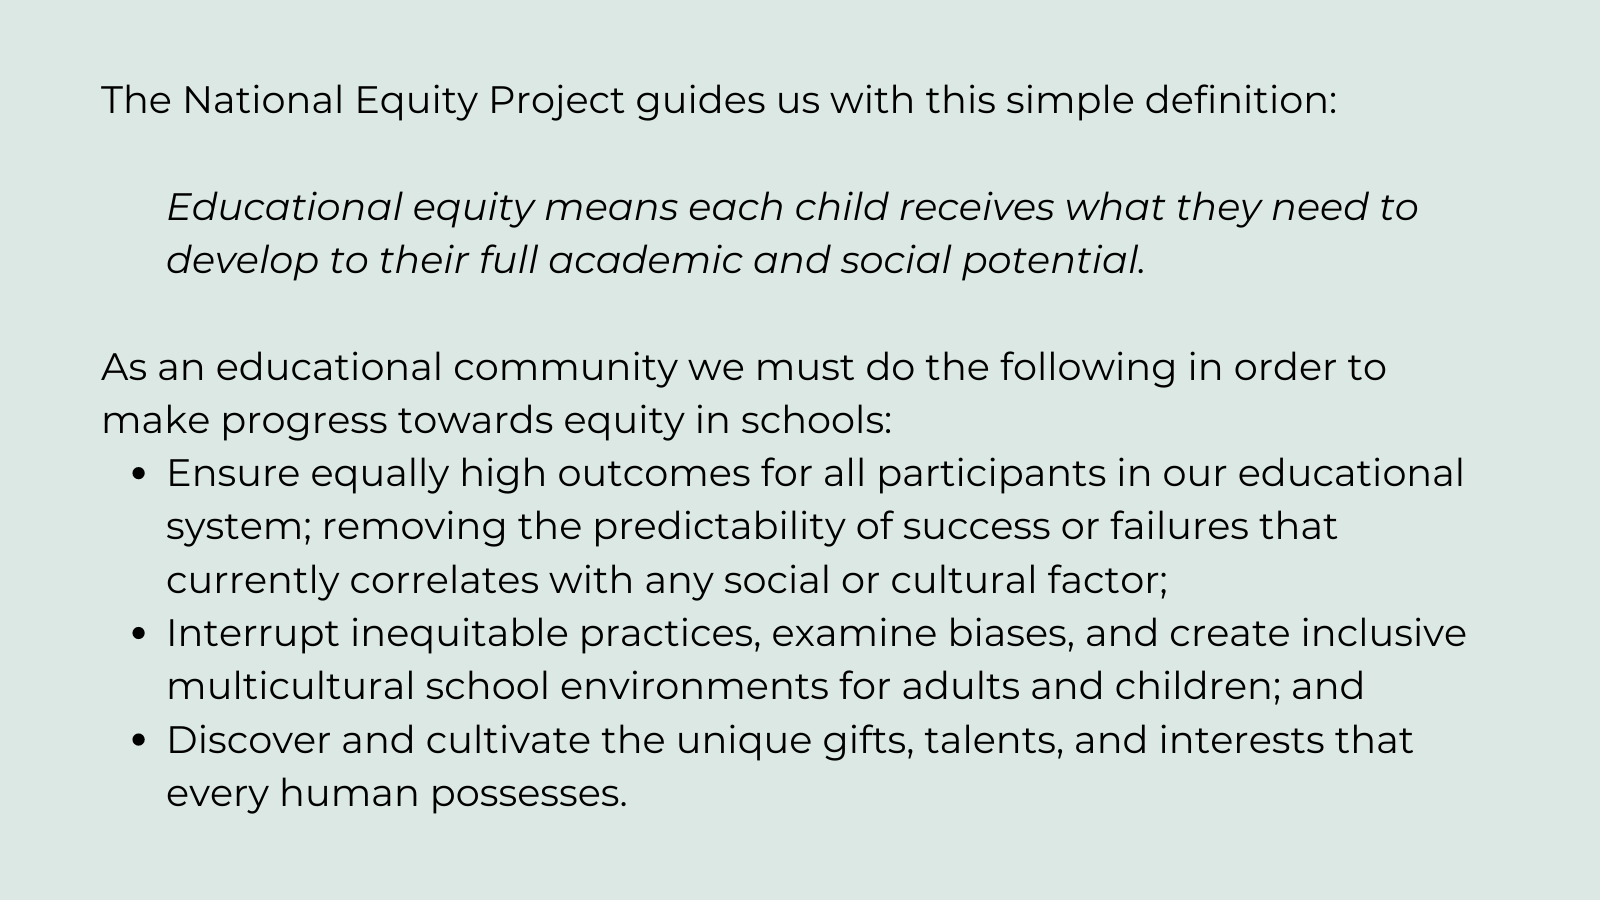 The National Equity Project guides us with this simple definition_ Educational equity means each child receives what they need to develop to their full academic and social potential. As an educational community w